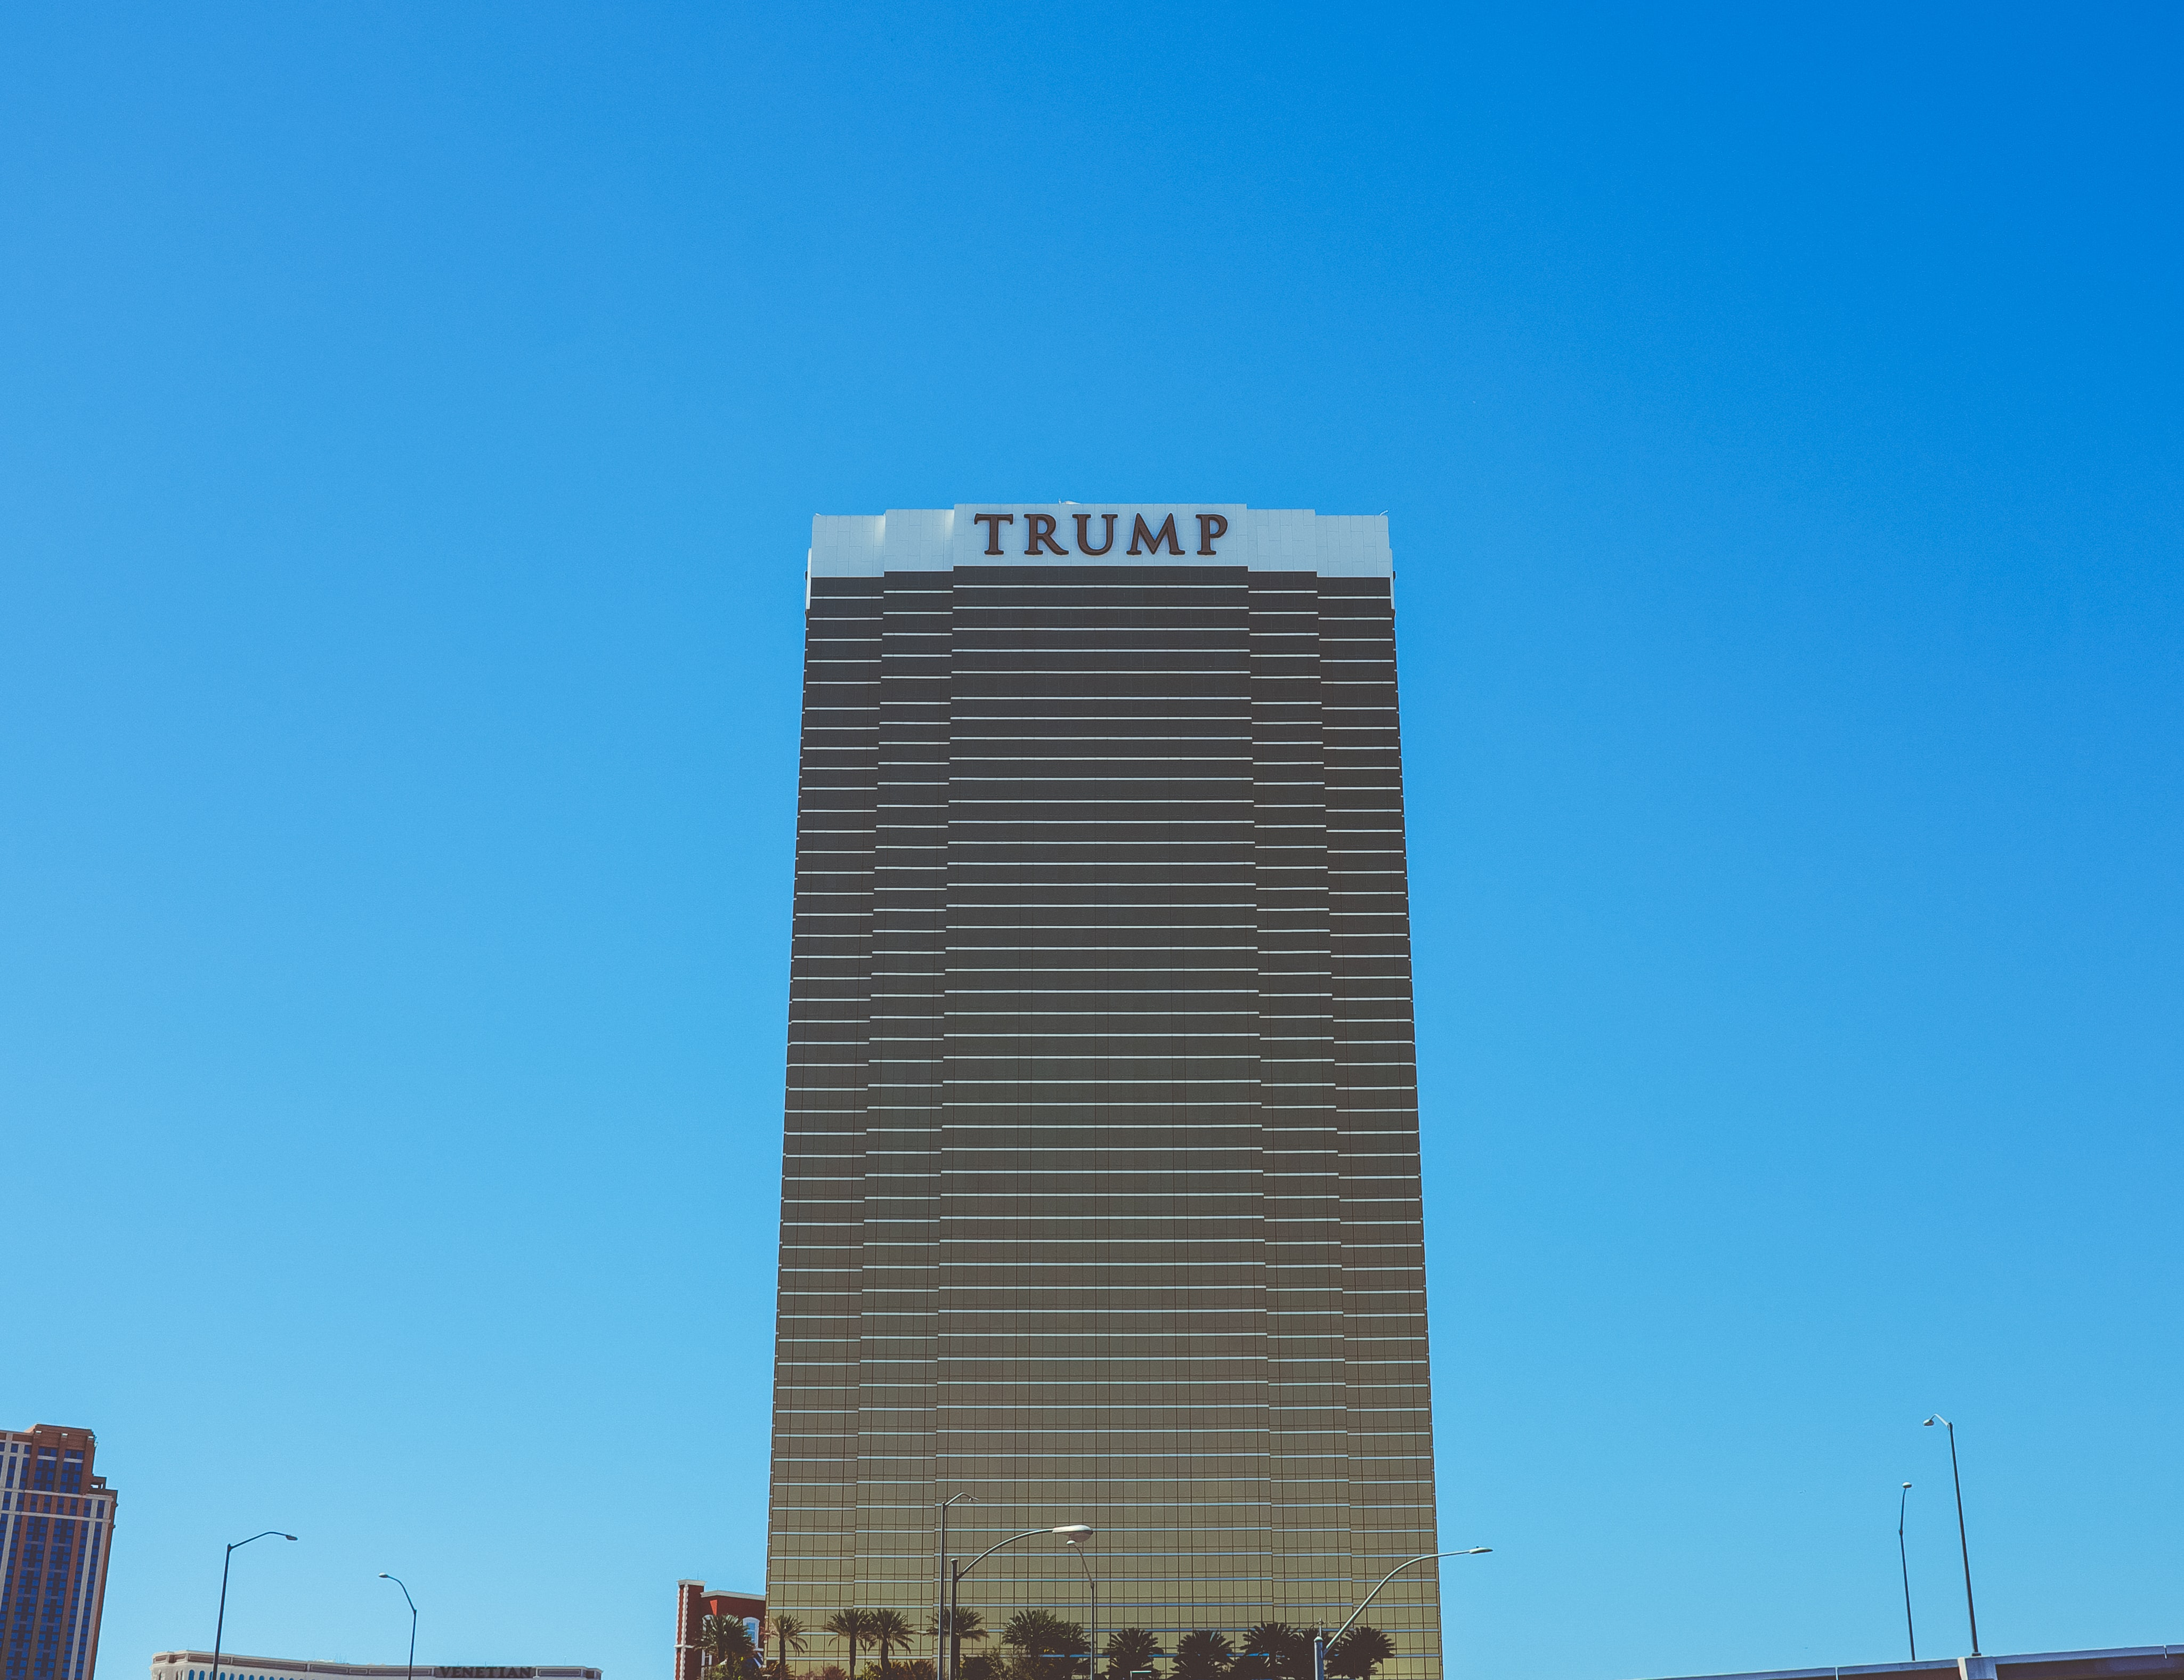 Faraway shot of Trump International Hotel Las Vegas with palm trees near the base